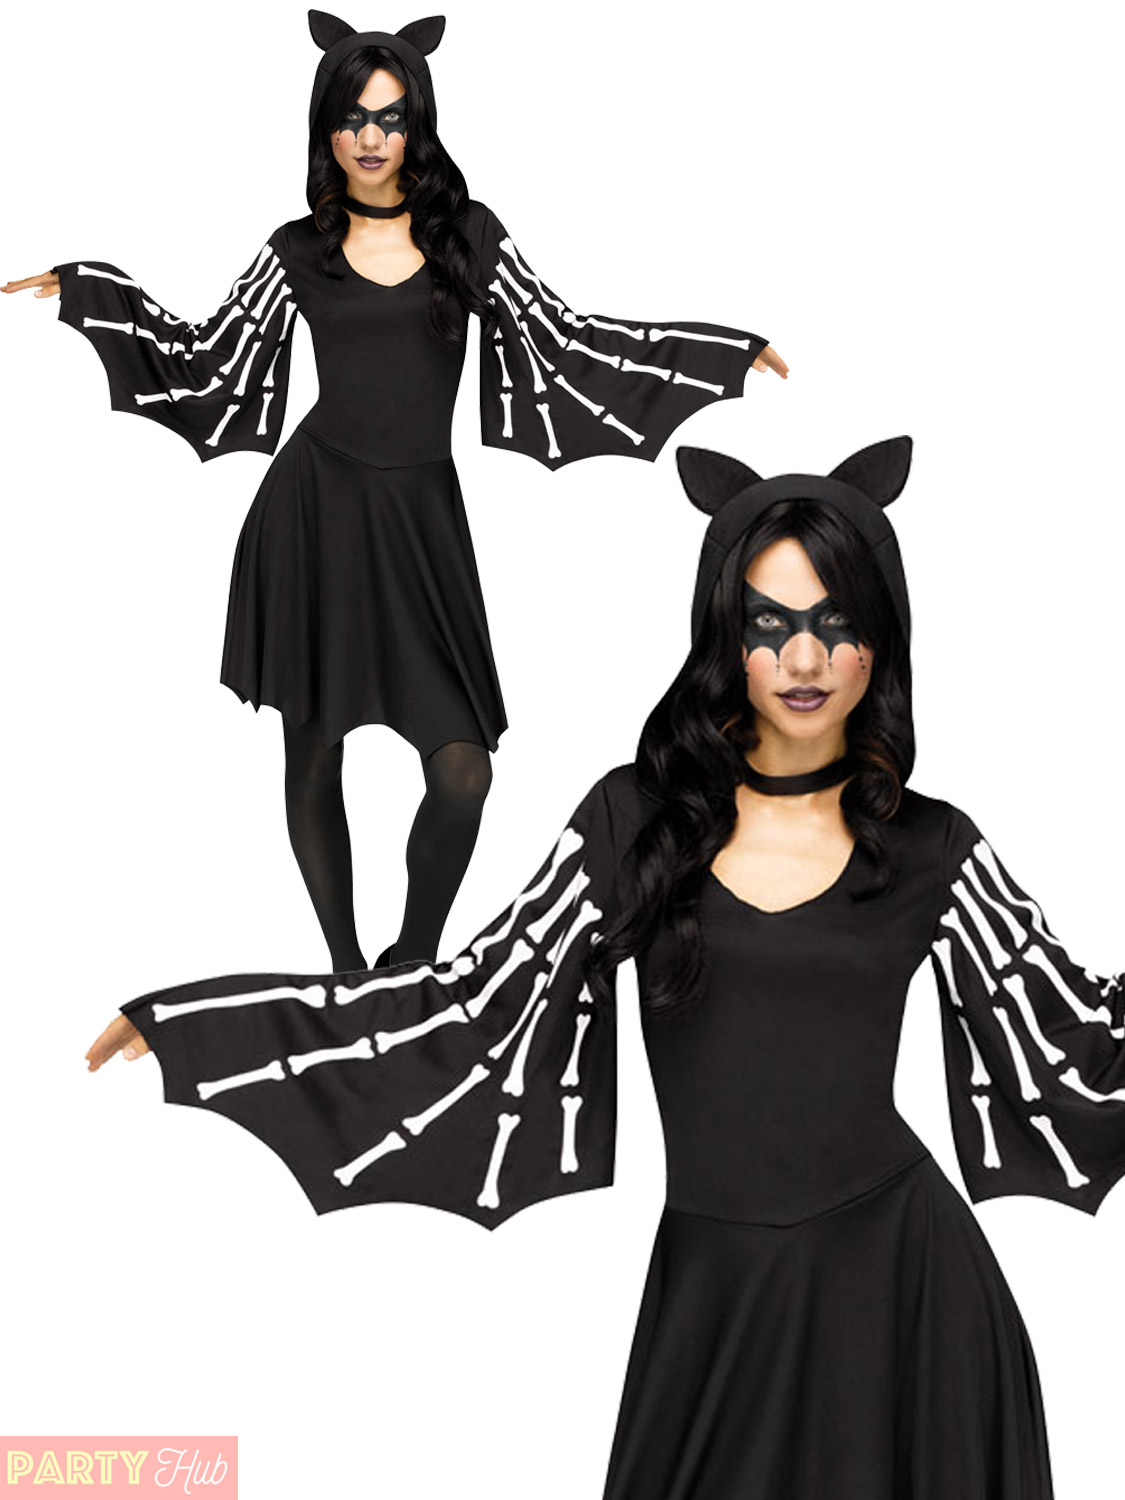 Ladies-Sexy-Bat-Costume-Adults-Halloween-Fancy-Dress-Womens-Animal-Outfit